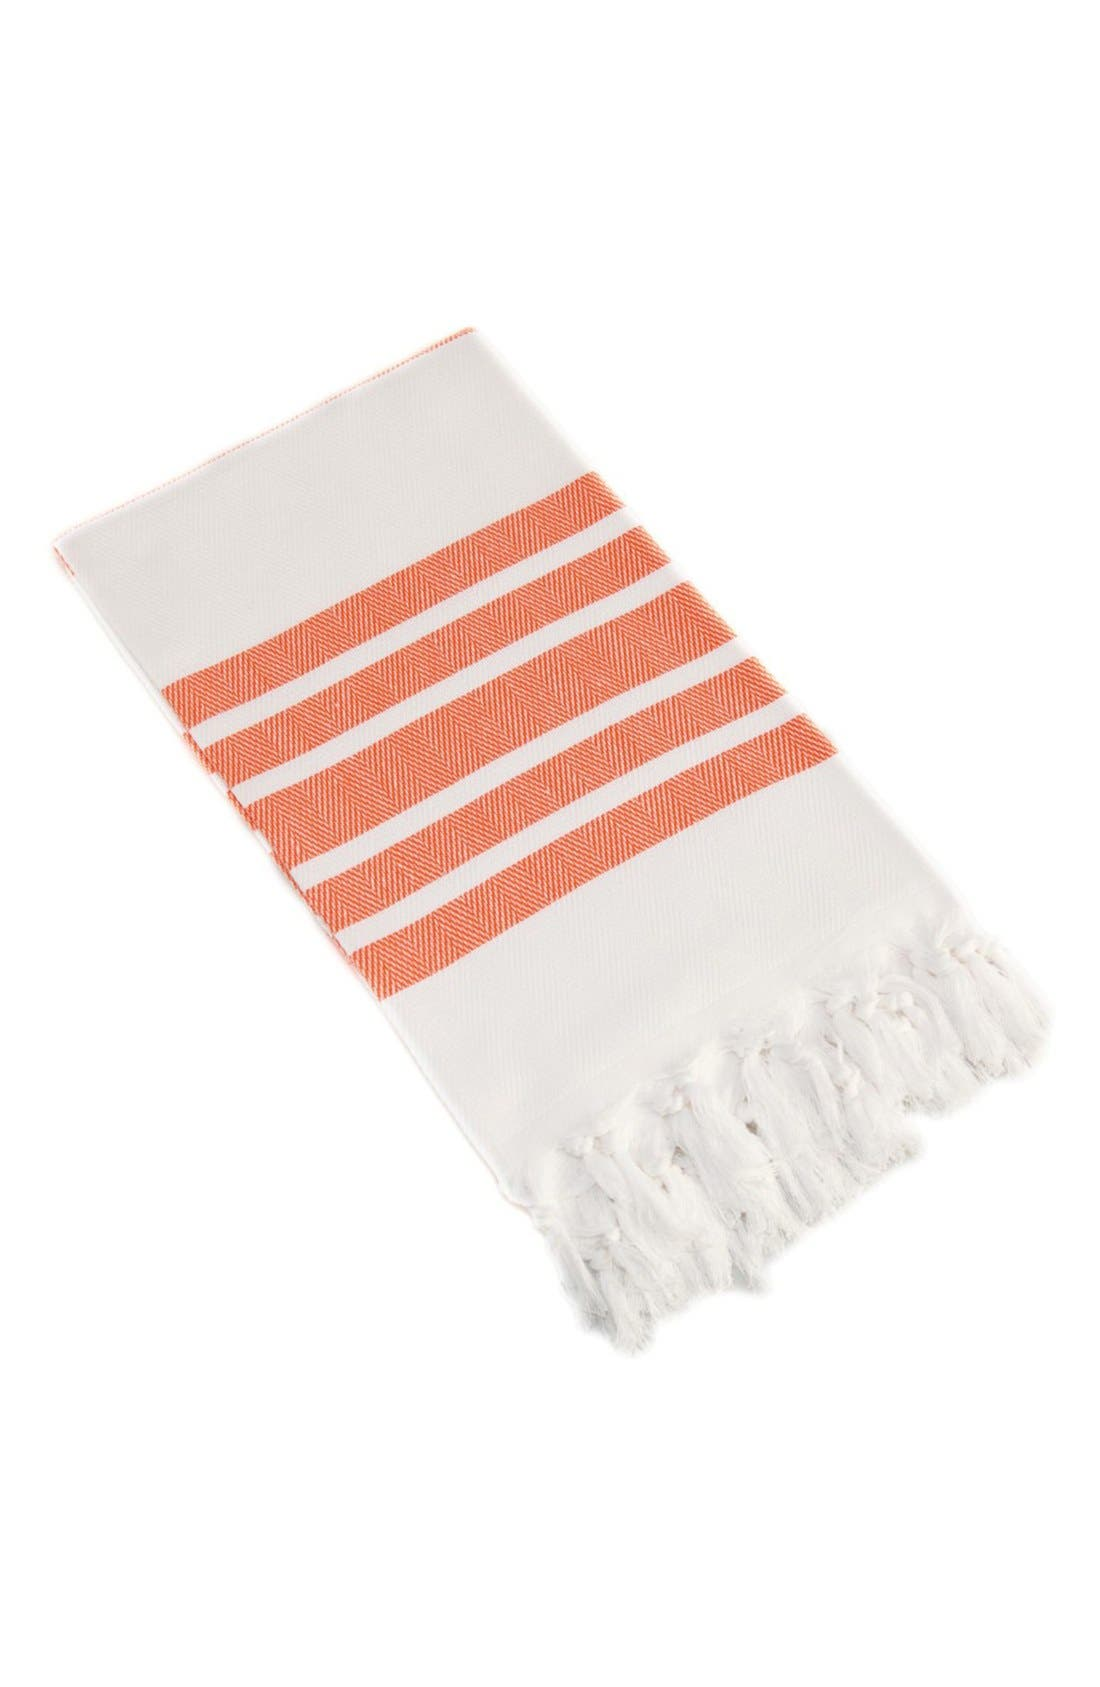 Herringbone Striped Turkish Pestemal Towel,                         Main,                         color, 800